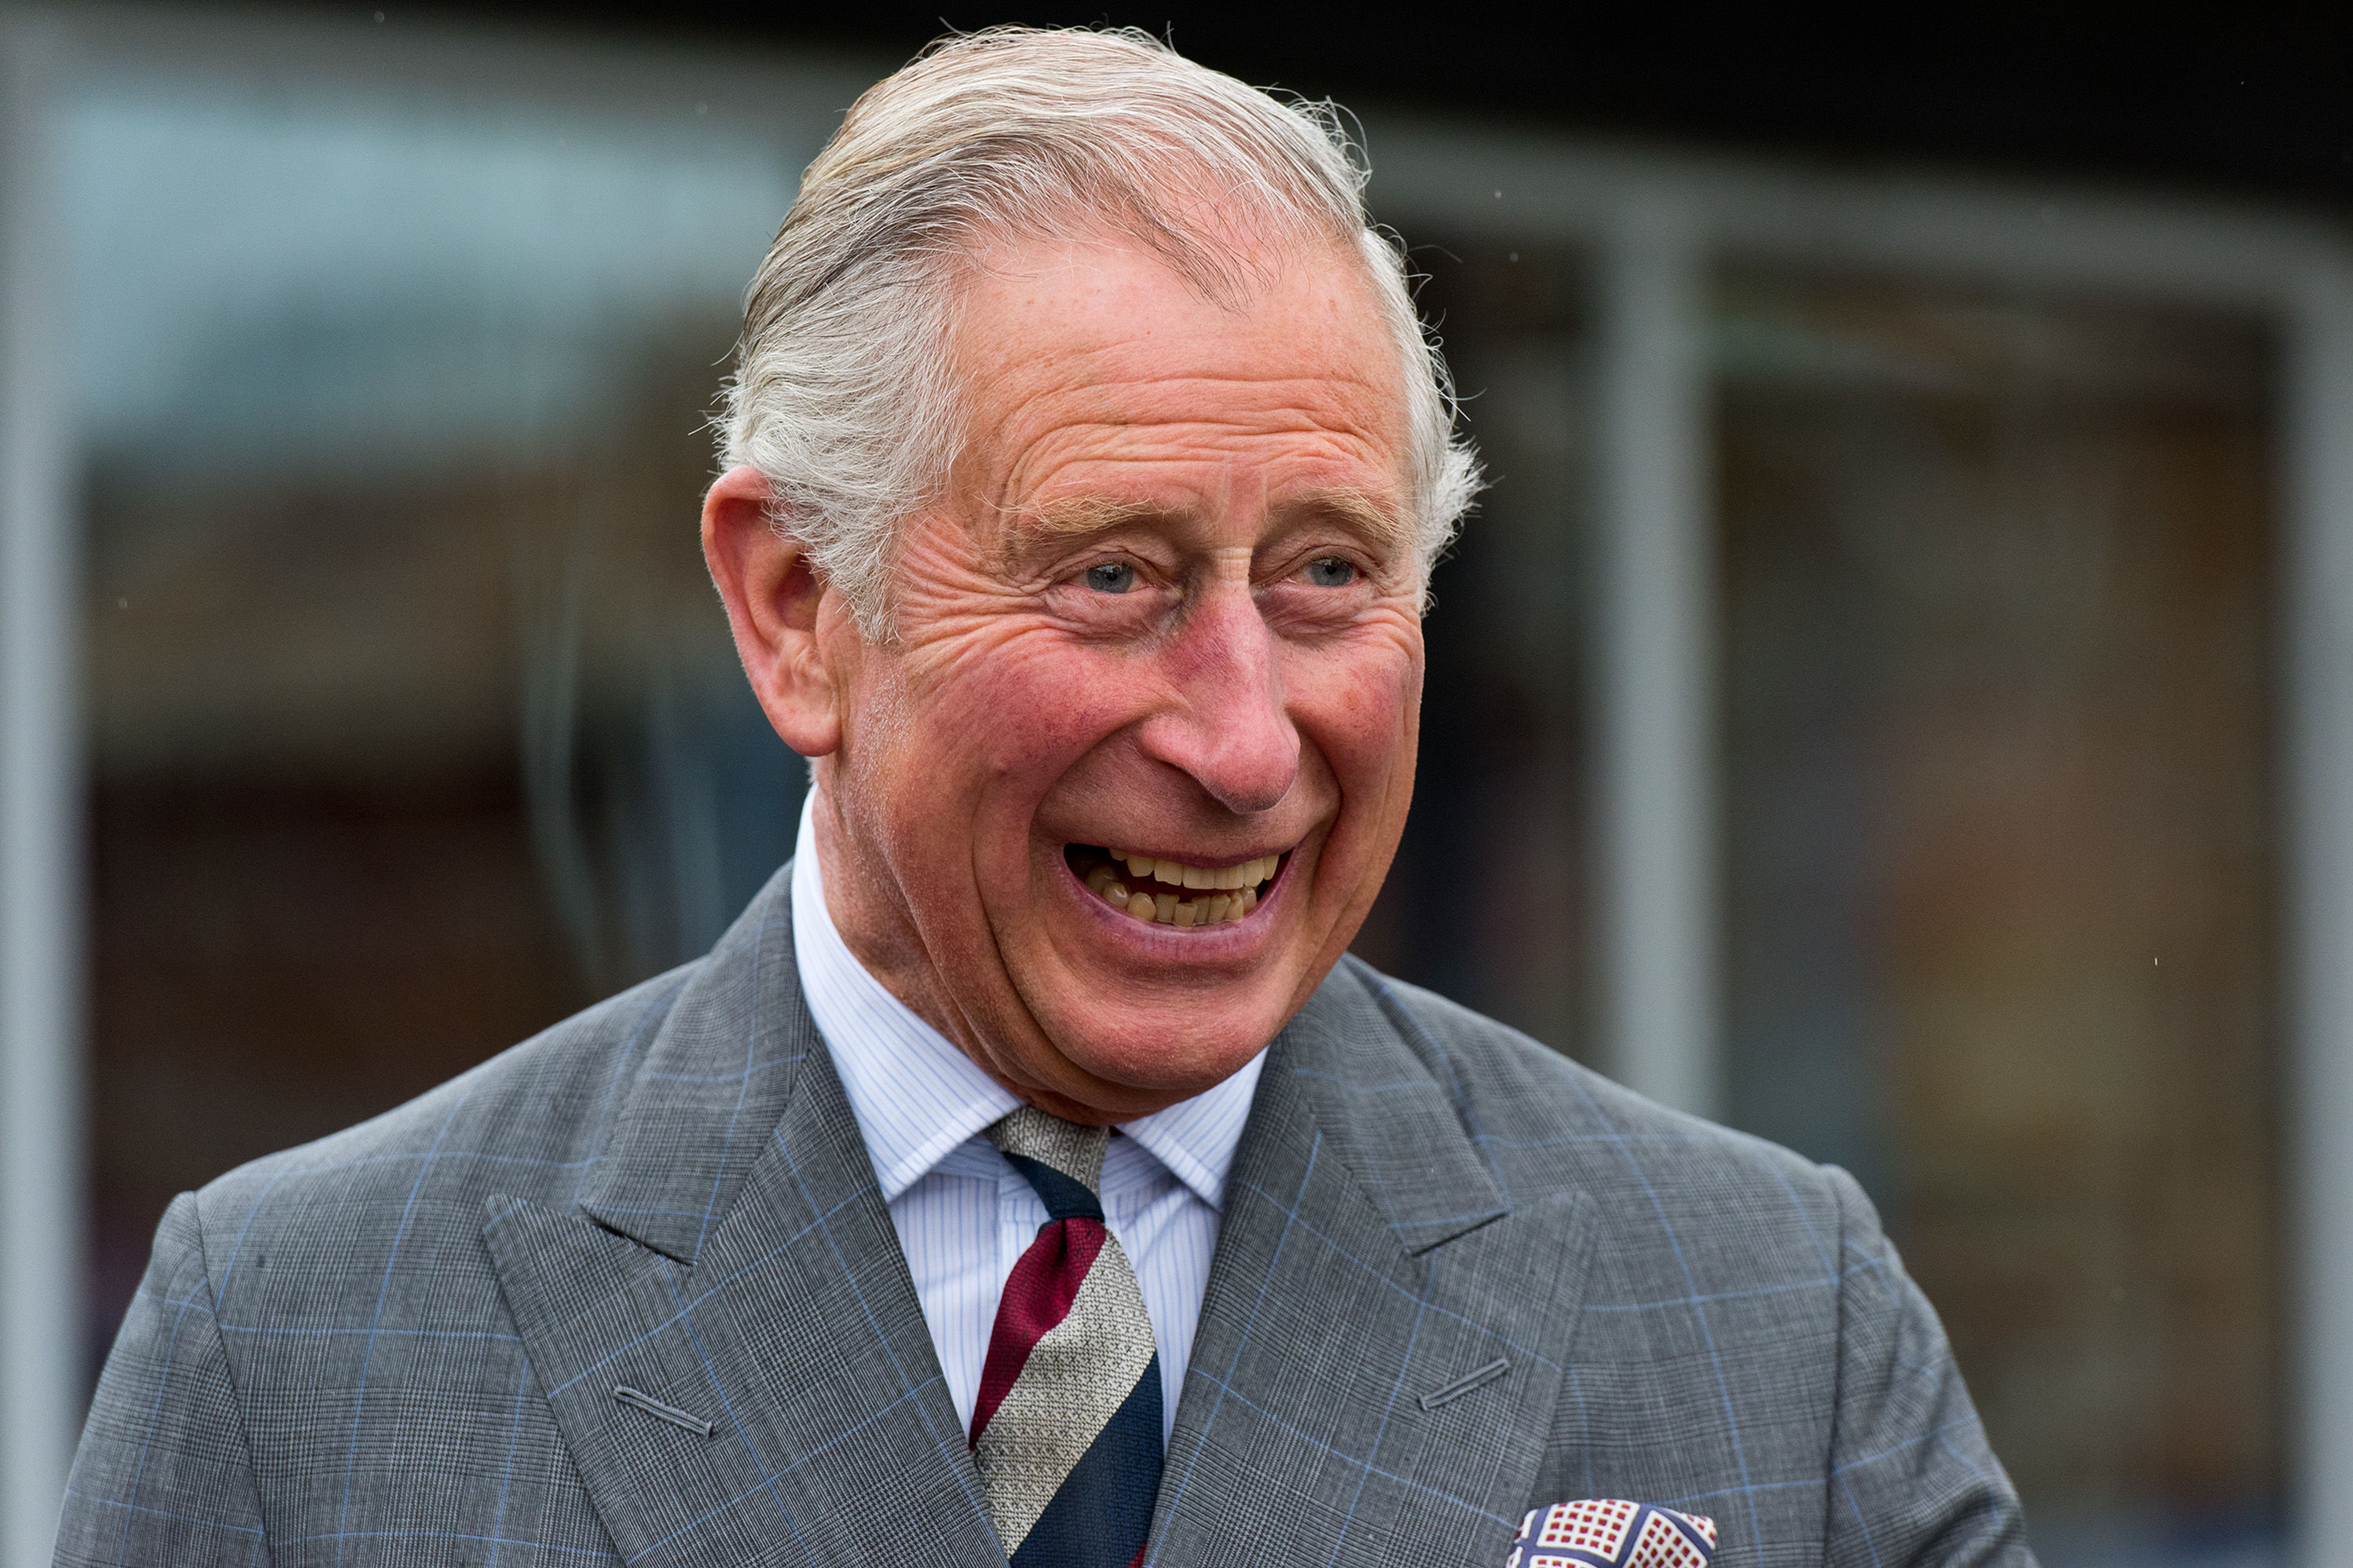 Prince Charles Outranks Prince William, Kate Middleton and Harry in Number of Royal Engagements